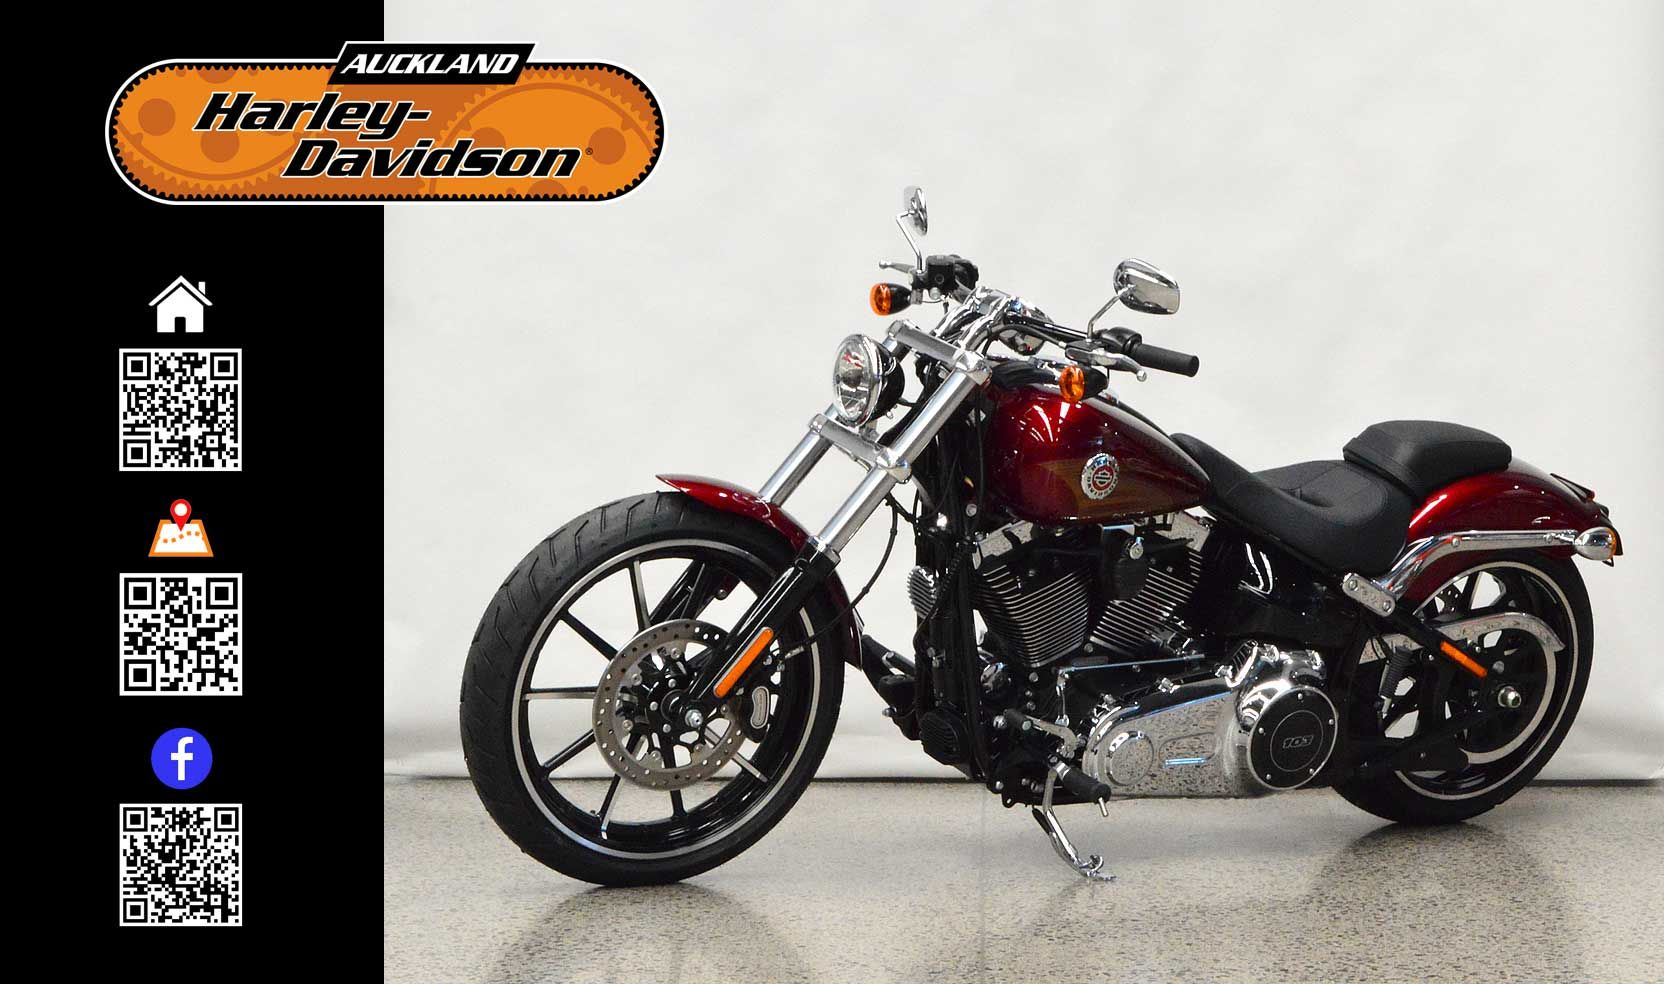 2016 HARLEY-DAVIDSON FXSB in Velocity Red Sunglo At Auckland Motorcycles & Power Sports,  New Zealand www.amps.co.nz